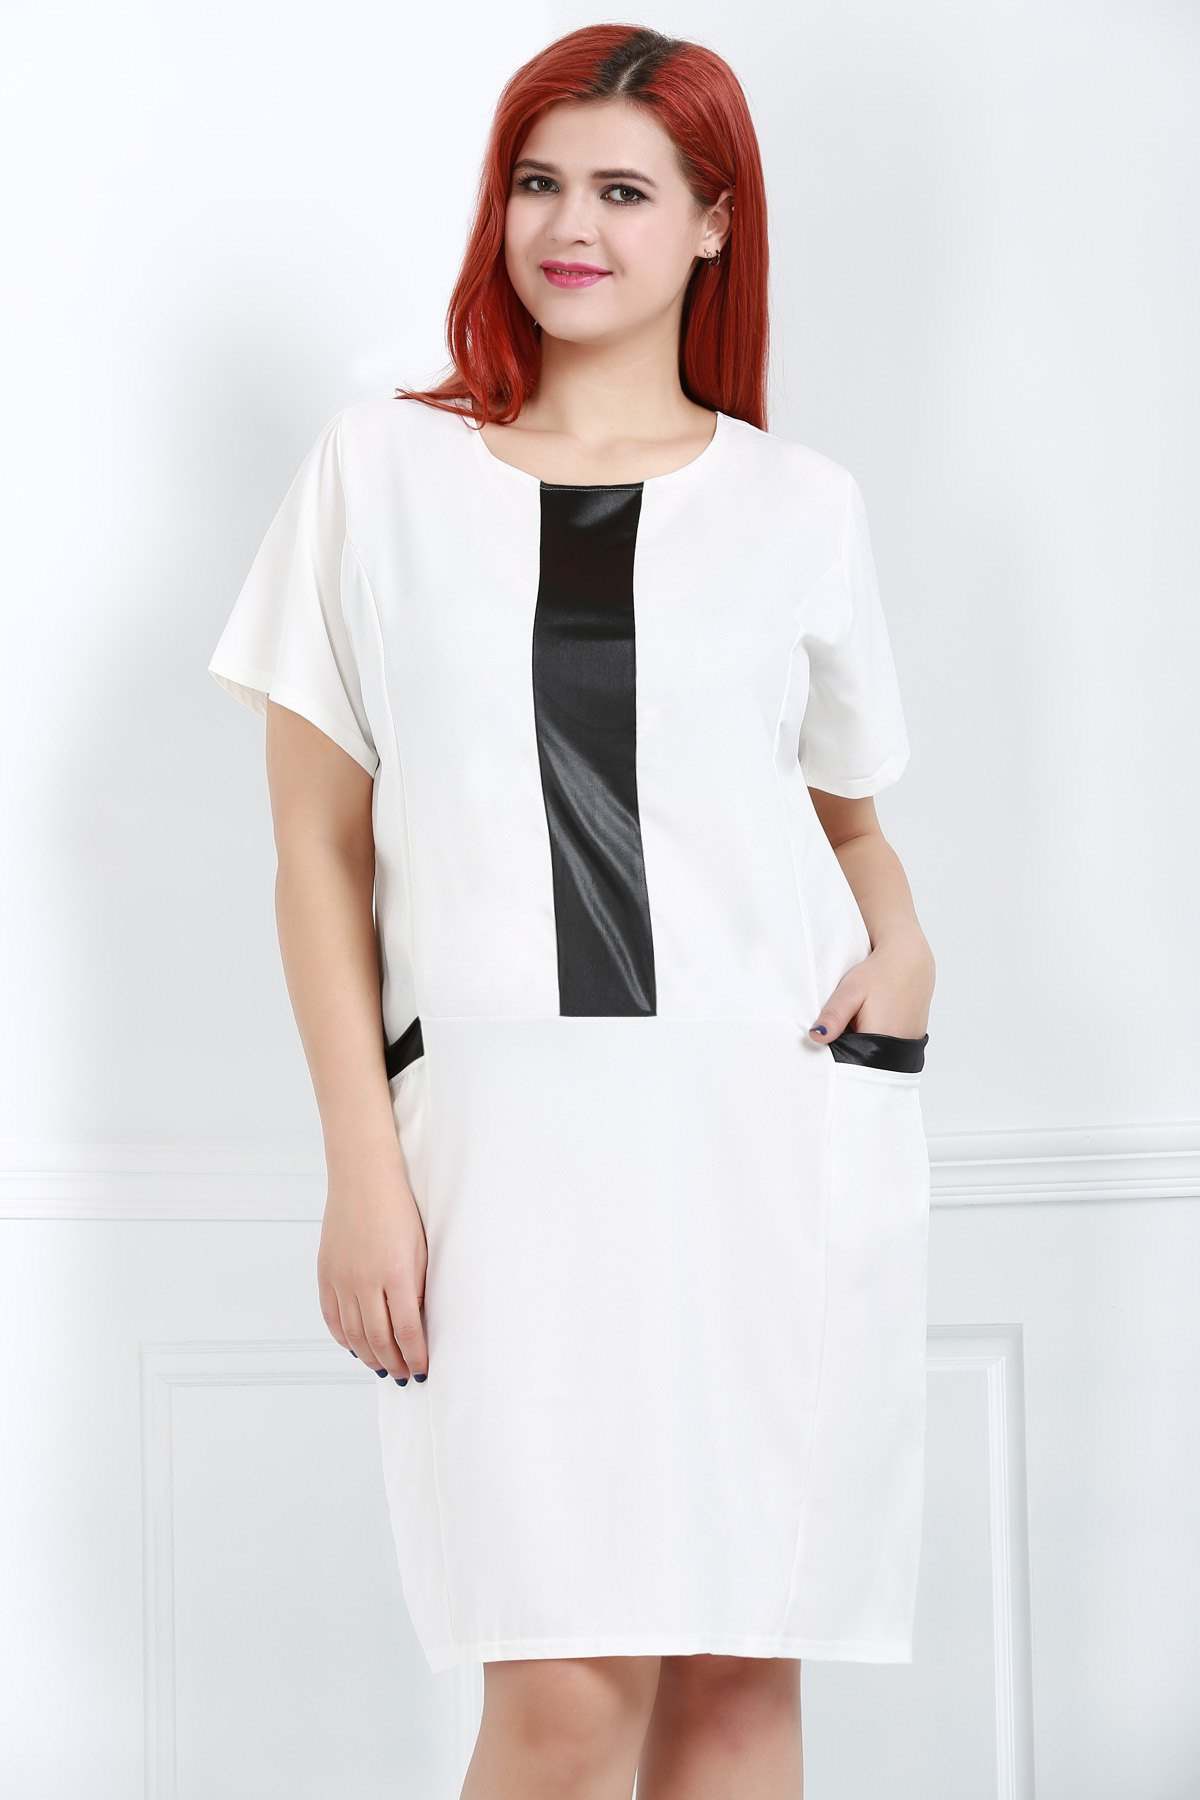 Fashionable Women's Scoop Neck Short Sleeve Dress - WHITE 2XL